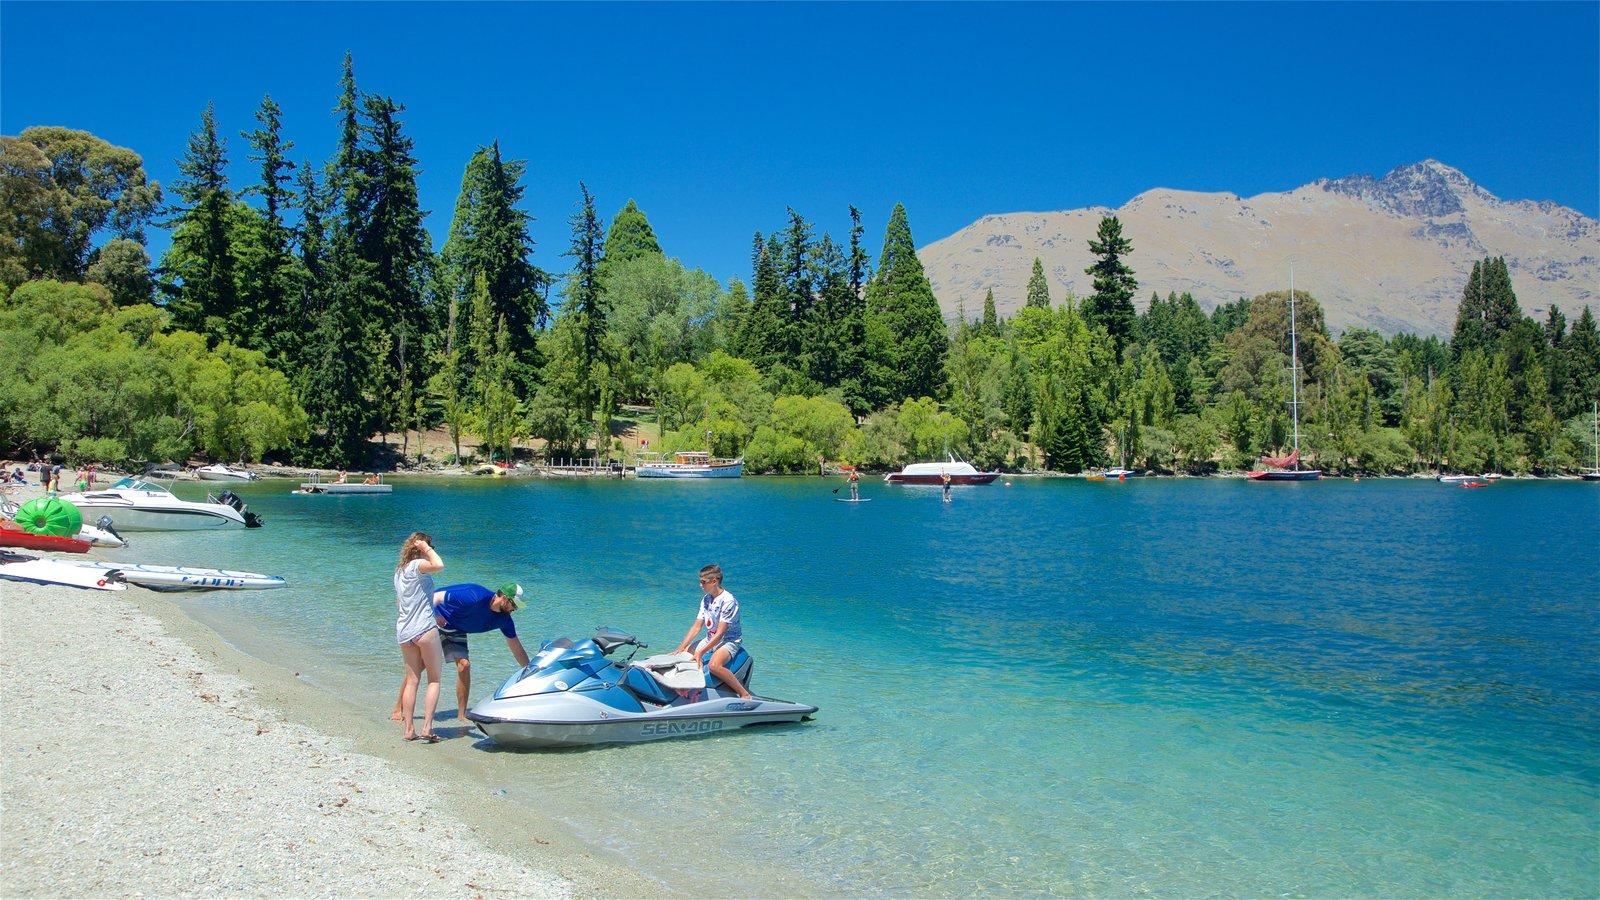 Queenstown Beach showing mountains, a pebble beach and a lake or waterhole